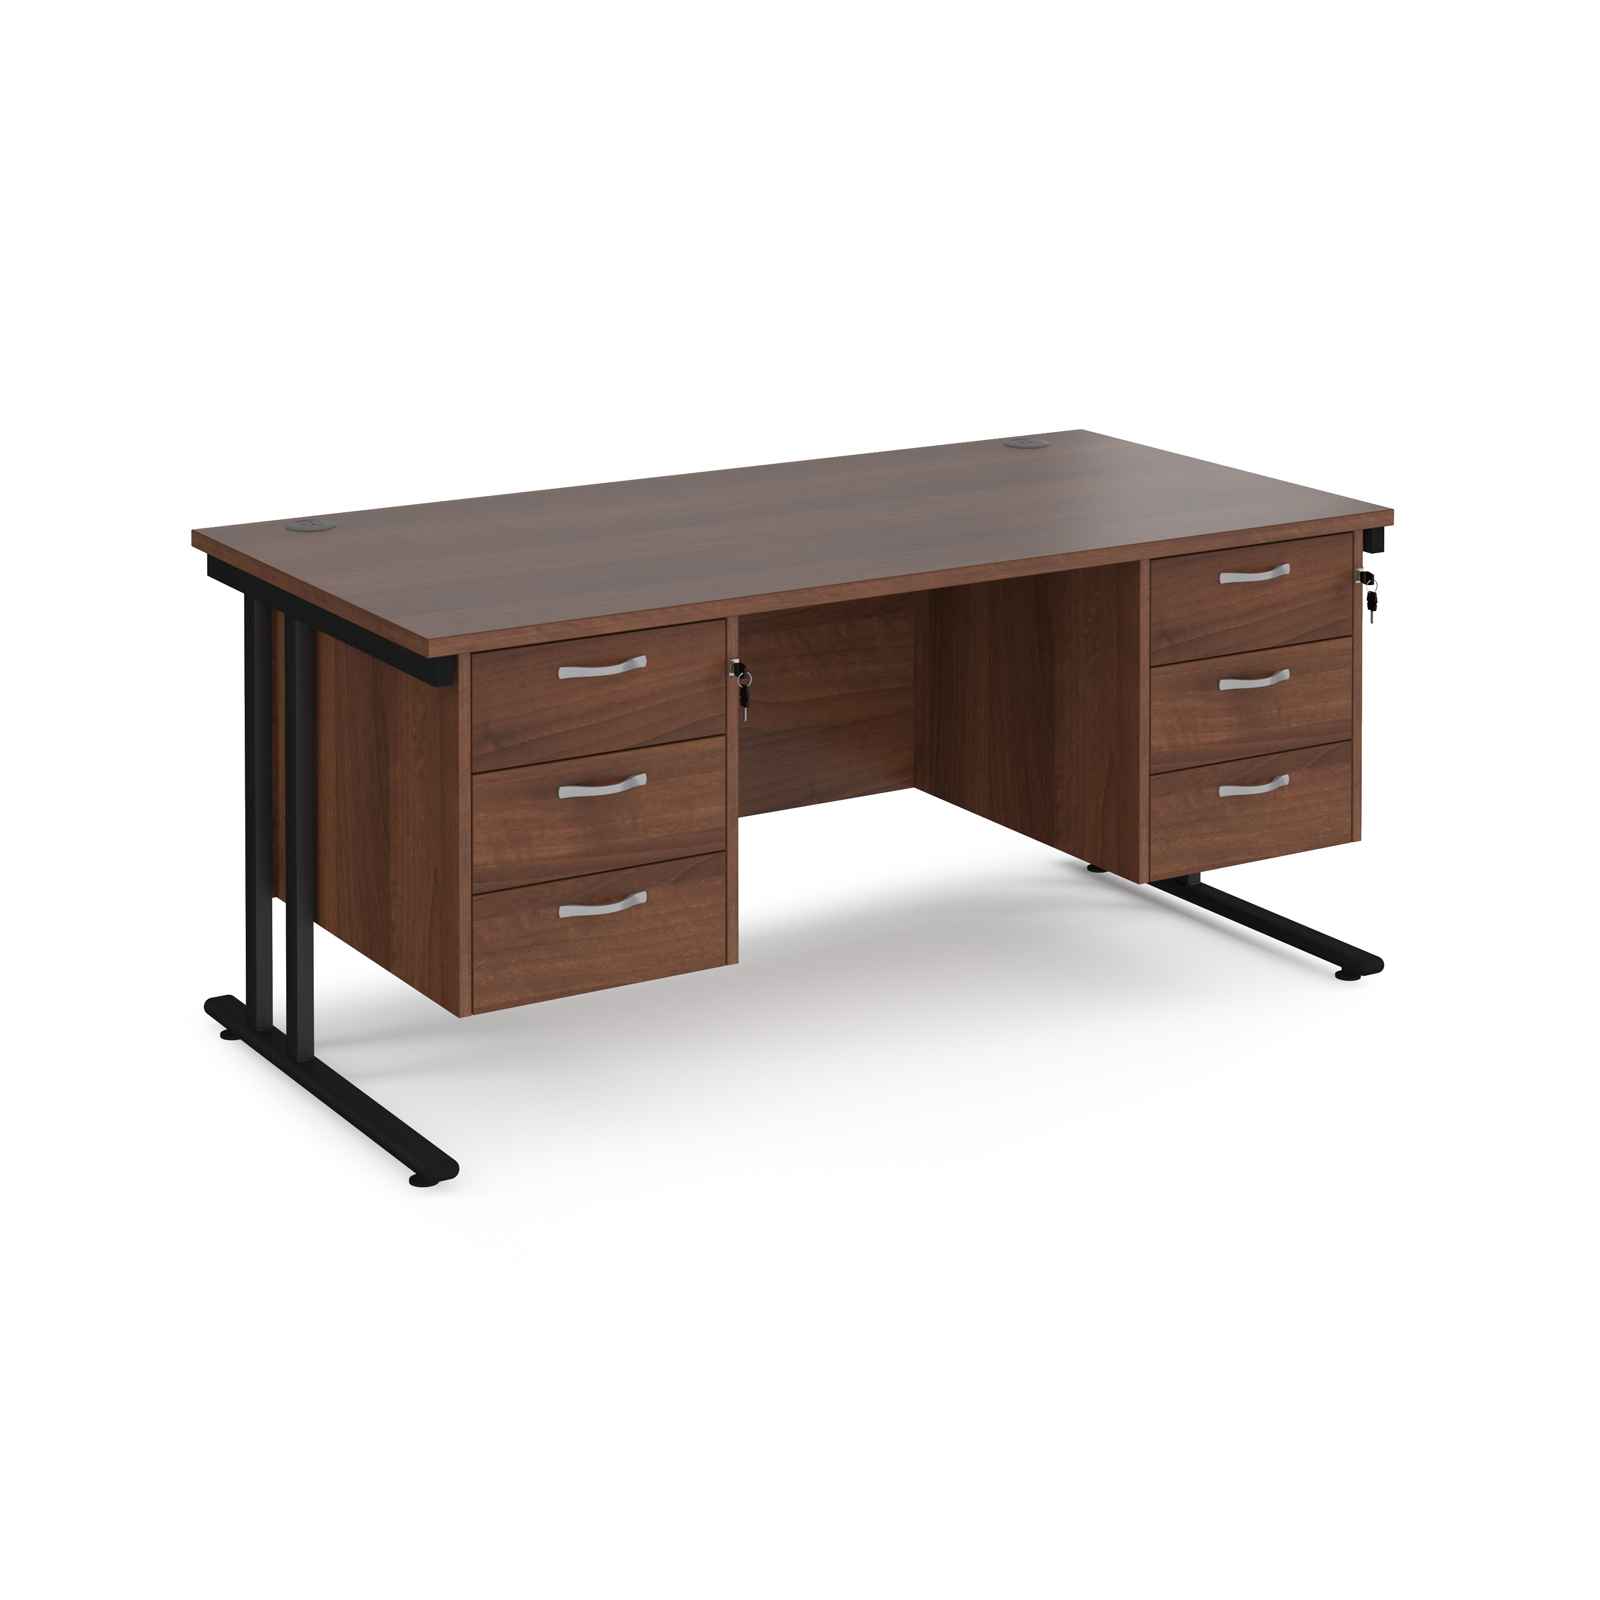 Maestro 25 straight desk 1600mm x 800mm with two x 3 drawer pedestals - black cantilever leg frame, walnut top